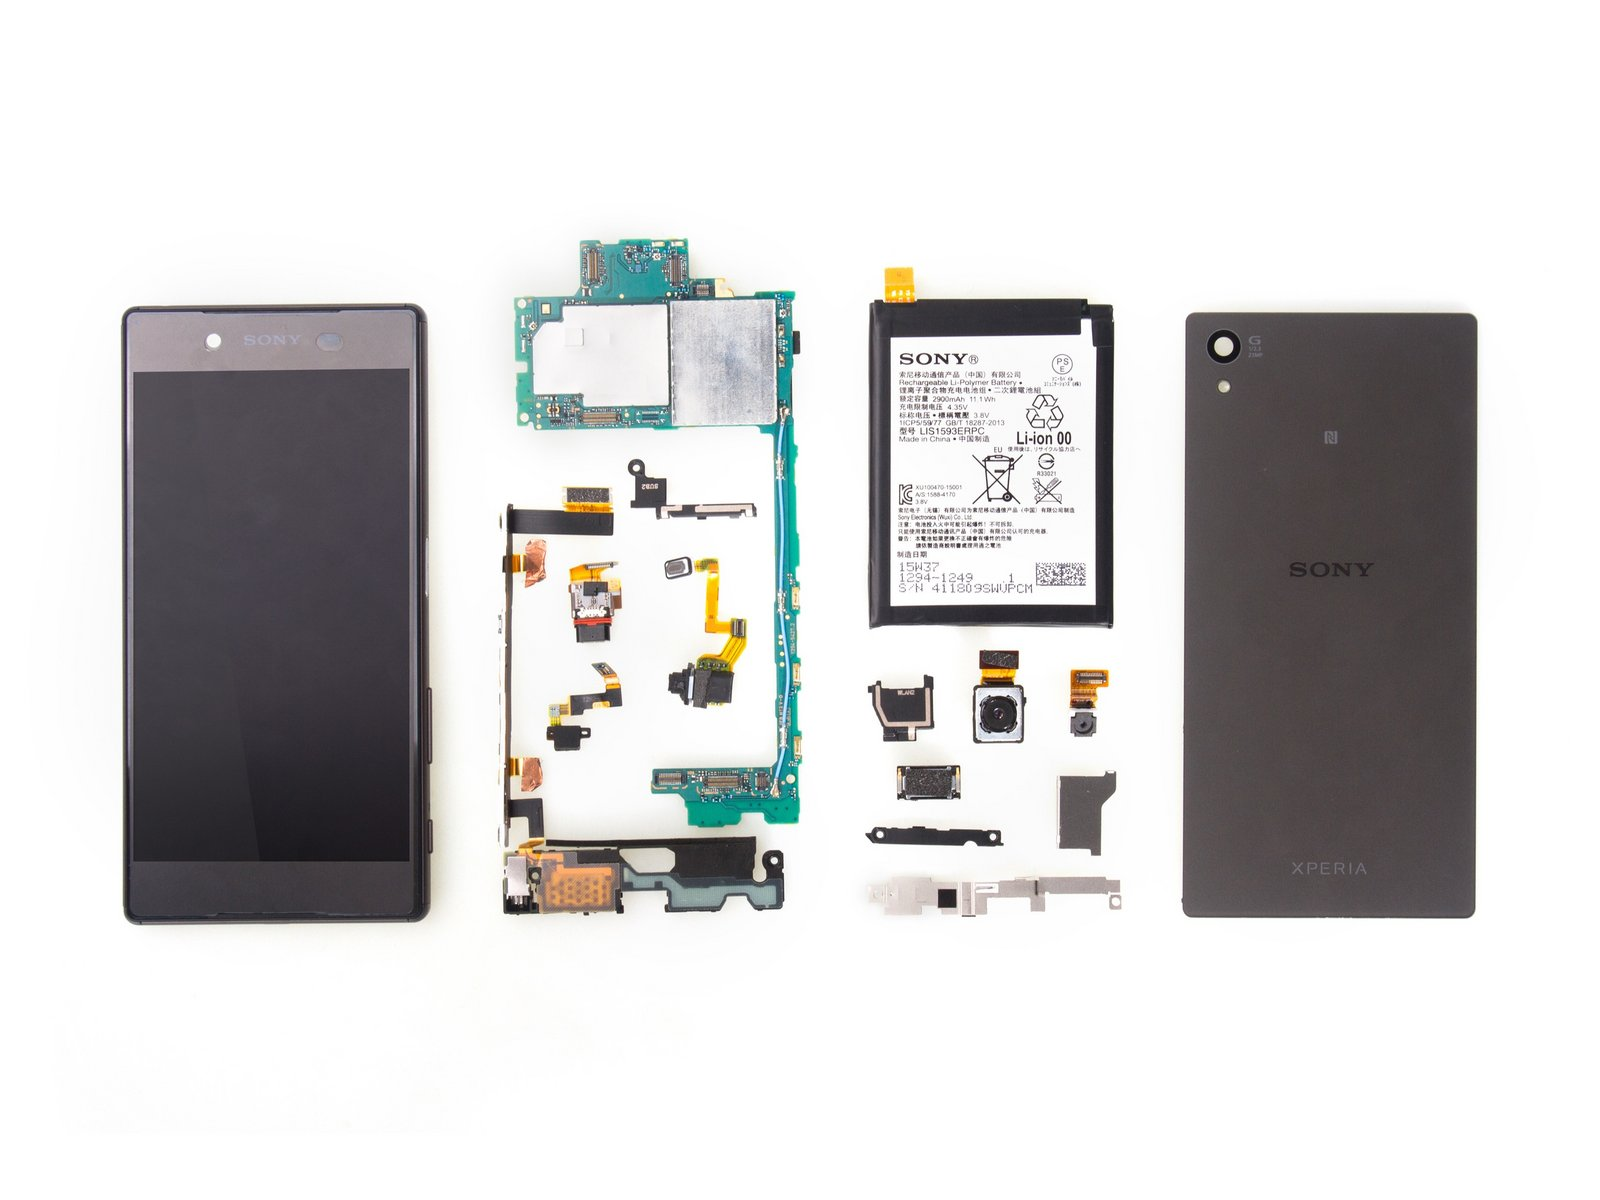 hight resolution of sony xperia s circuit diagram wiring library usb circuit diagram sony xperia s circuit diagram